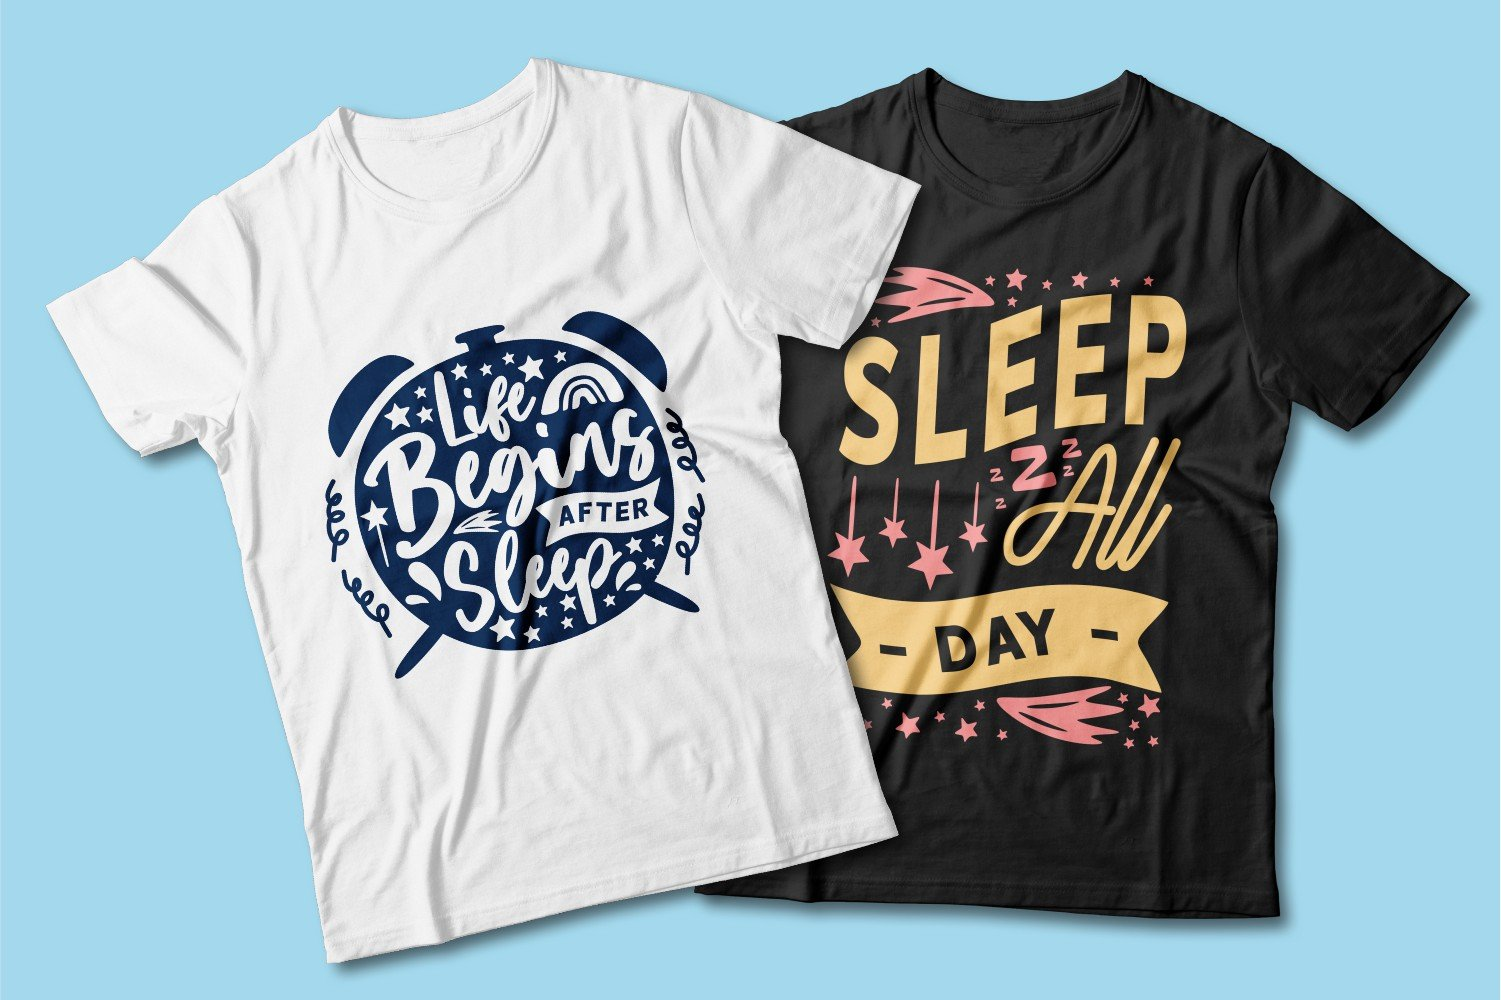 White and black T-shirts with multi-colored lettering.